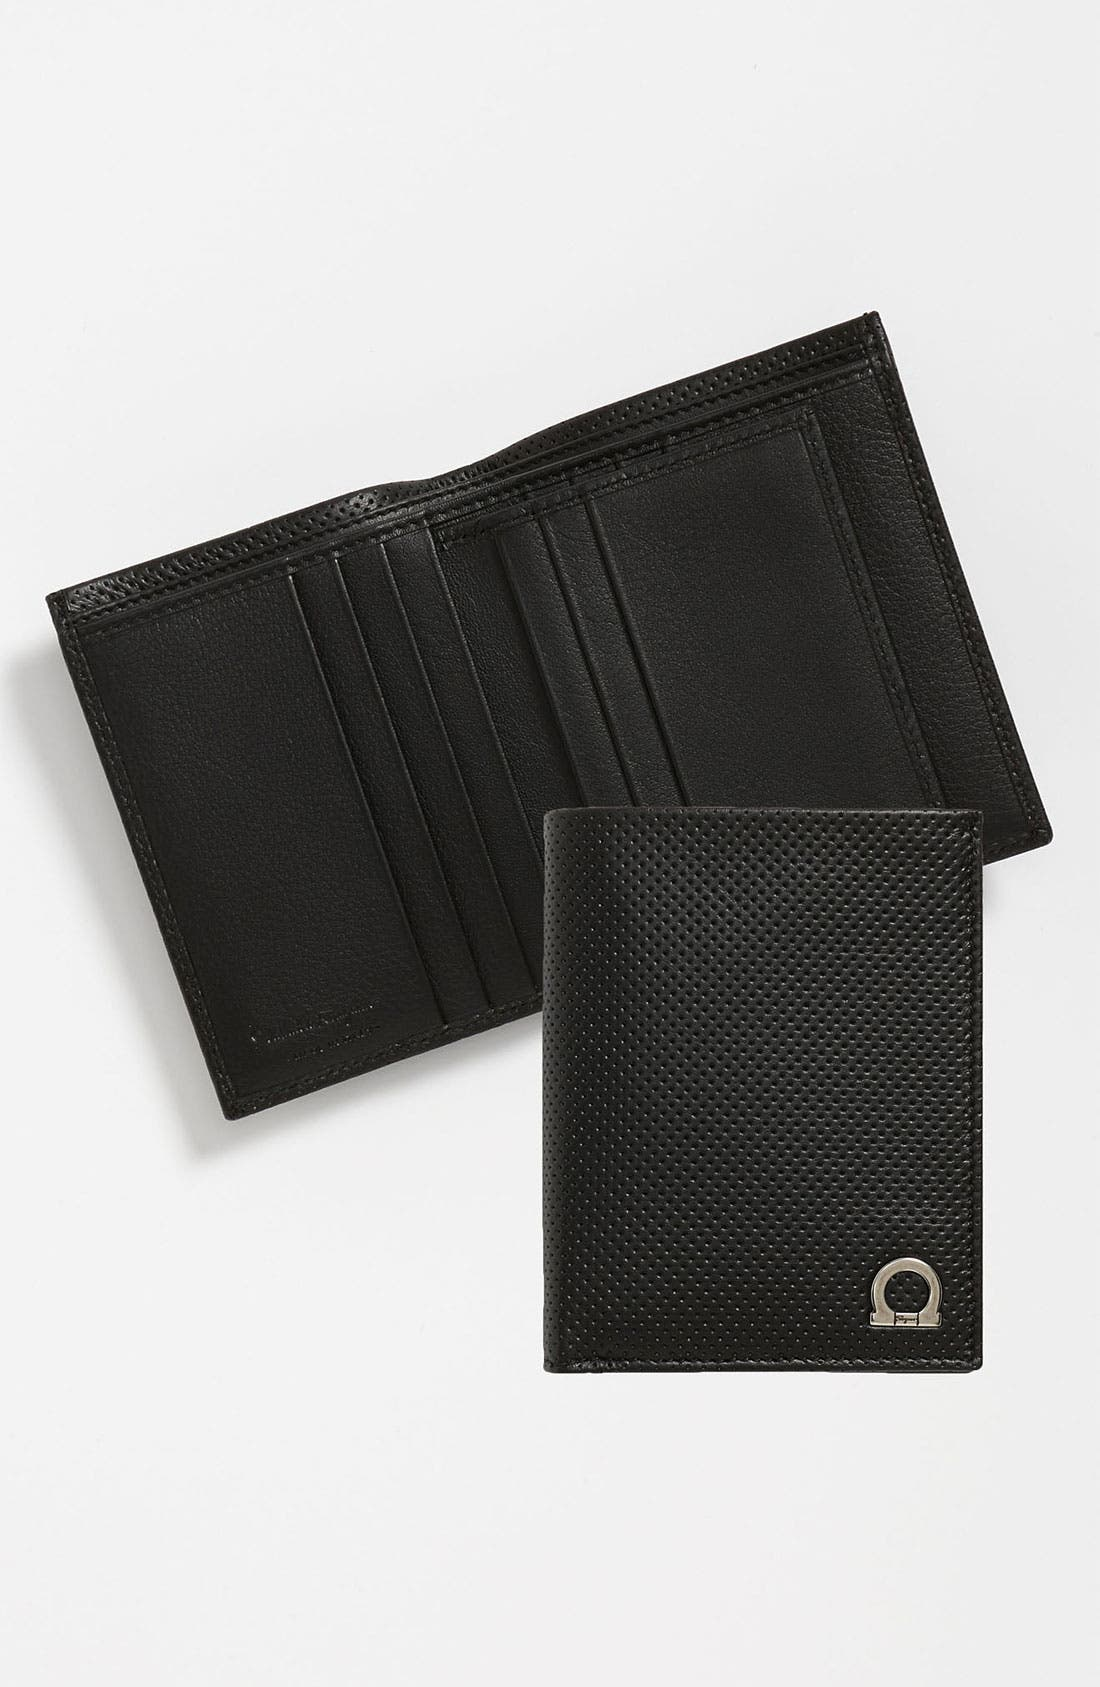 Alternate Image 1 Selected - Salvatore Ferragamo 'Melrose' Perforated Leather Wallet